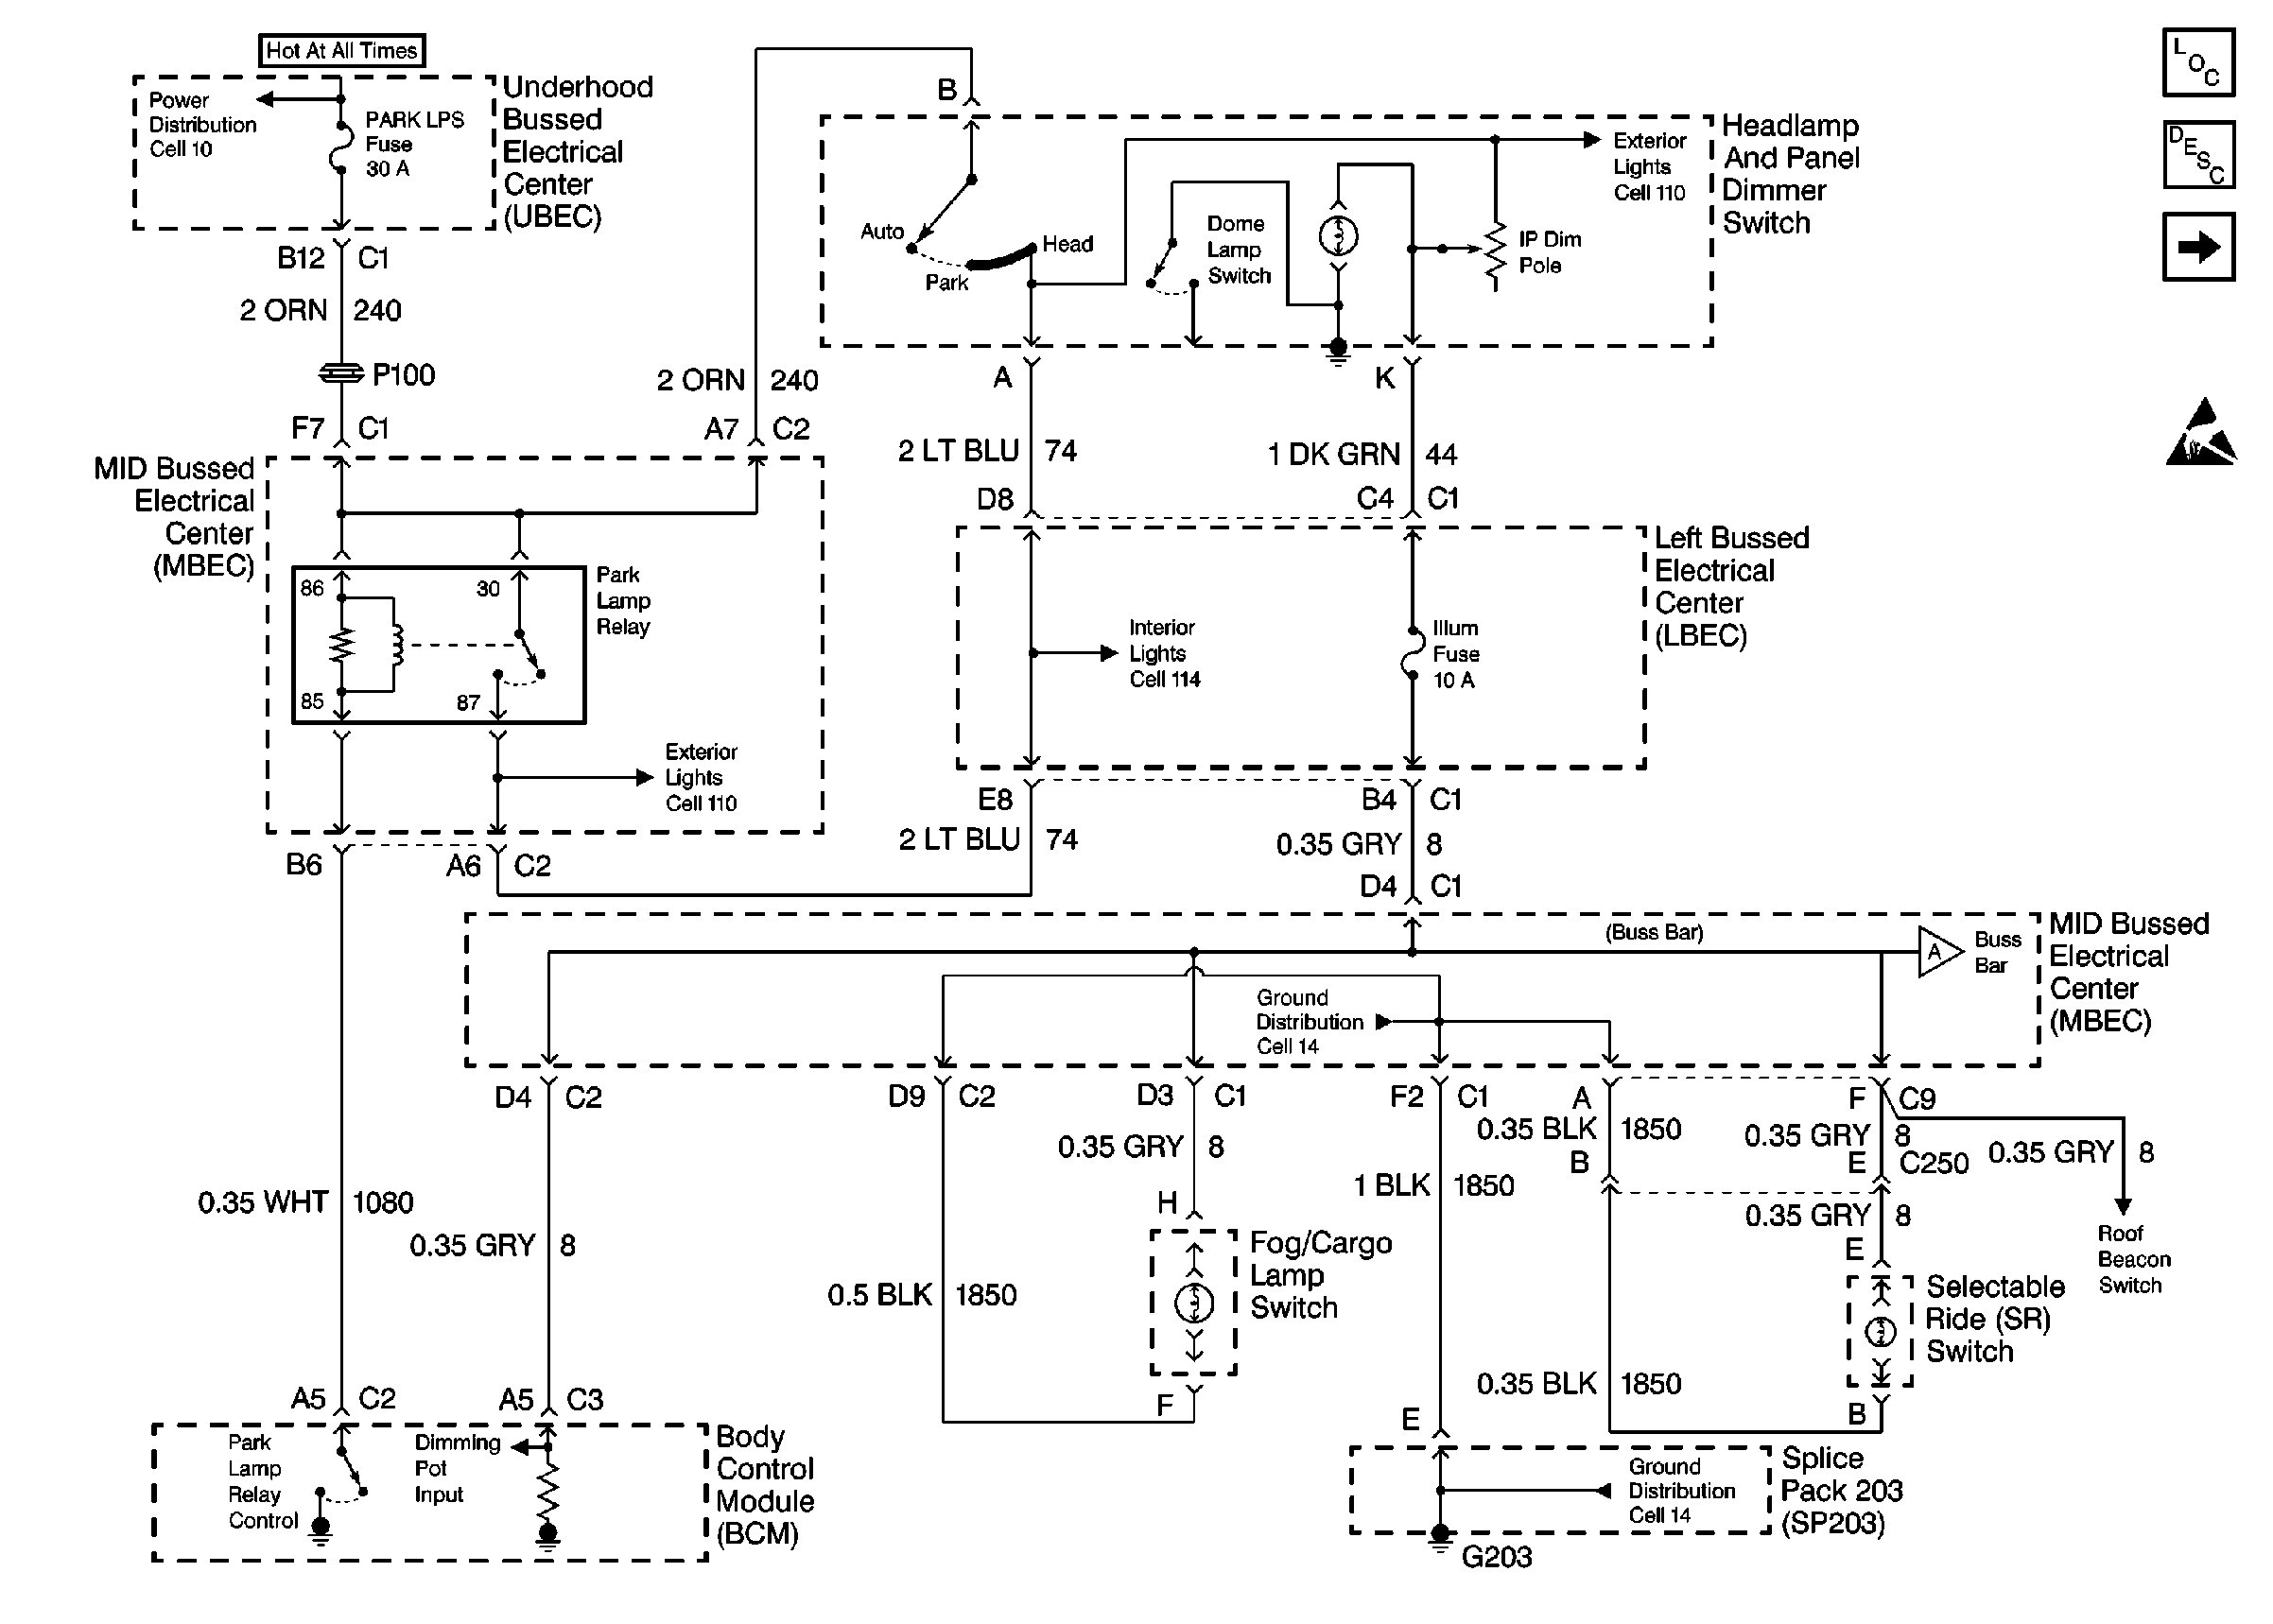 2007 Yukon Wiring Diagram - wiring diagram installation-update -  installation-update.pennyapp.it | 2007 Silverado Radio Wiring Diagram |  | pennyapp.it